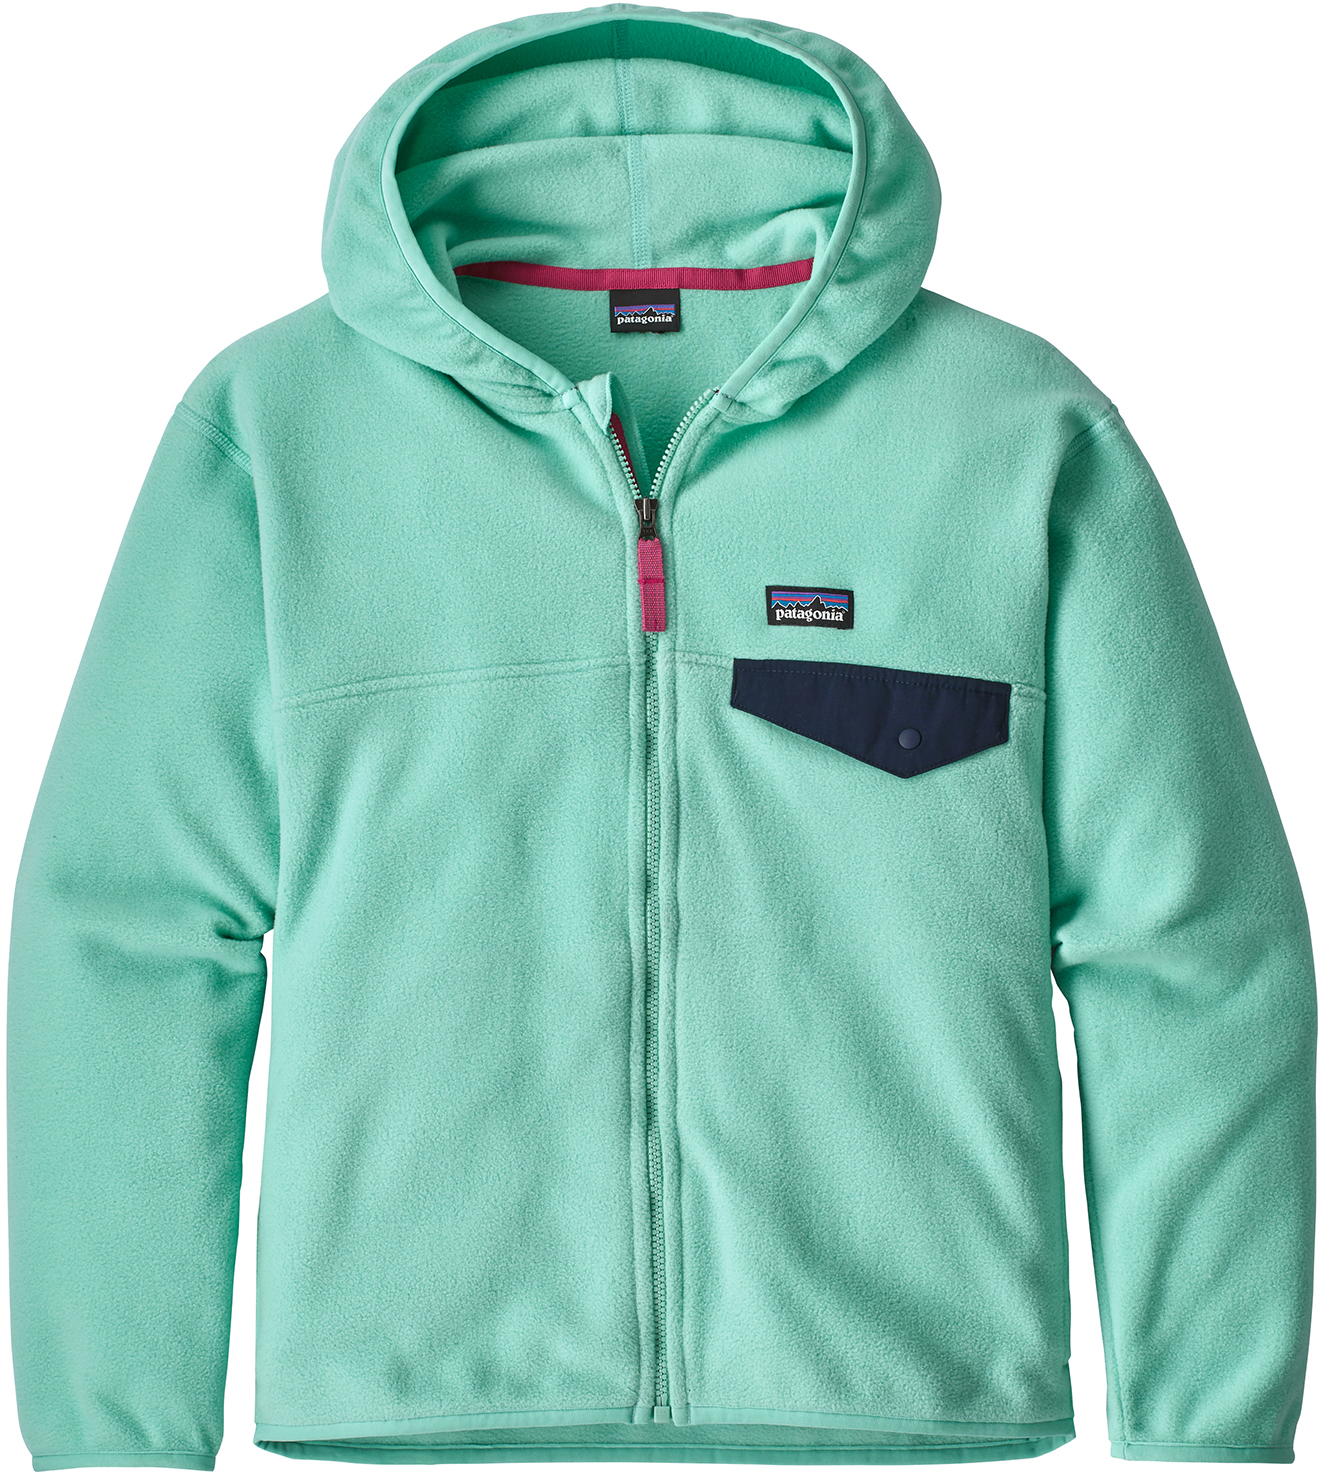 e706a2a31fcb Patagonia Micro D Snap T Jacket - Girls  - Youths